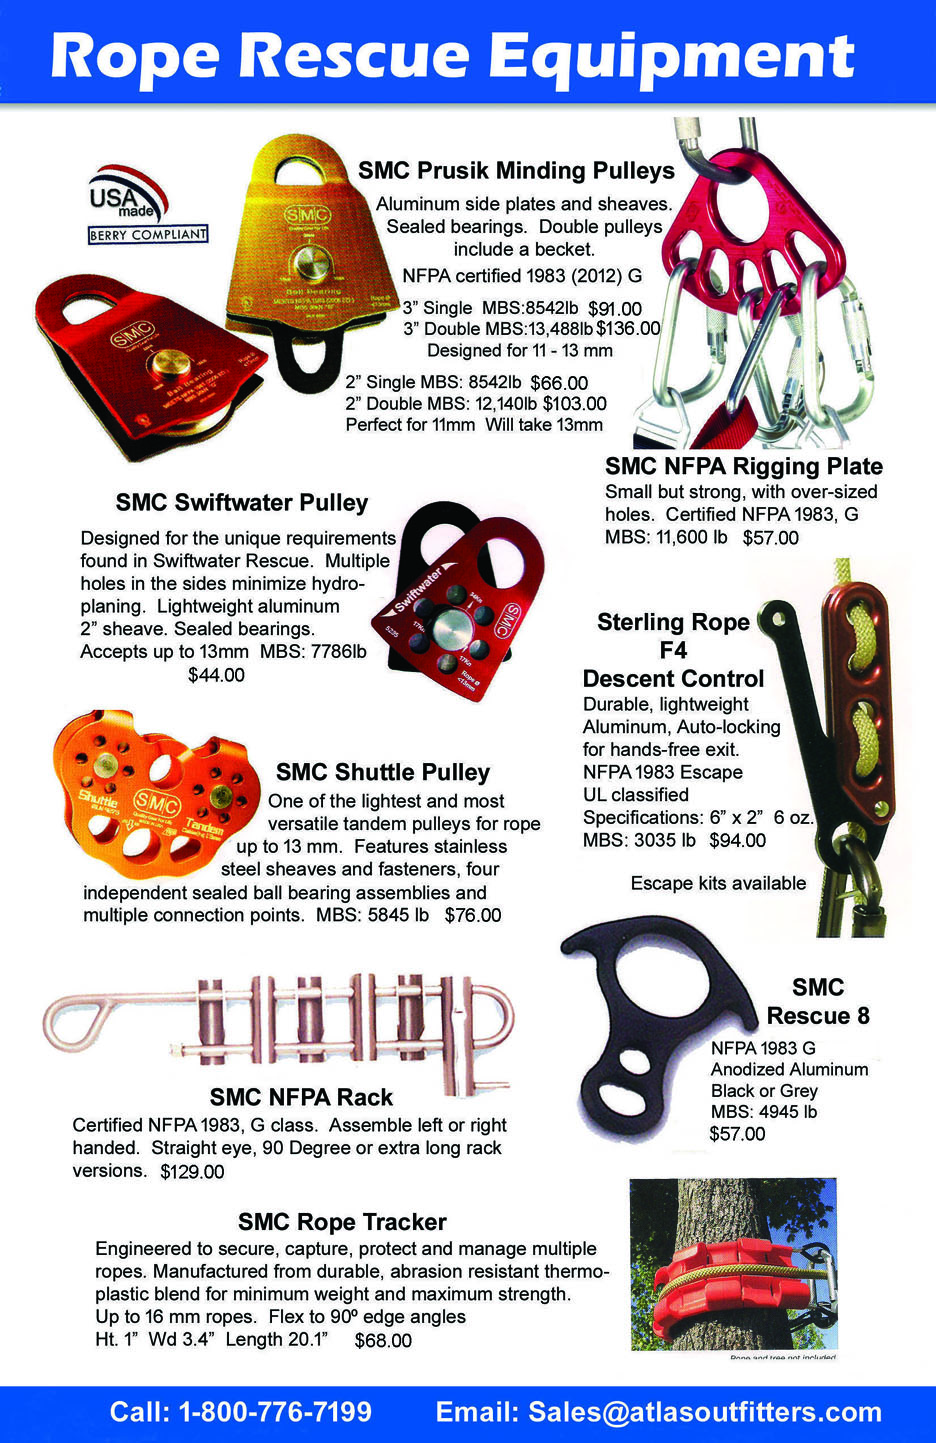 Rope rescue hardware